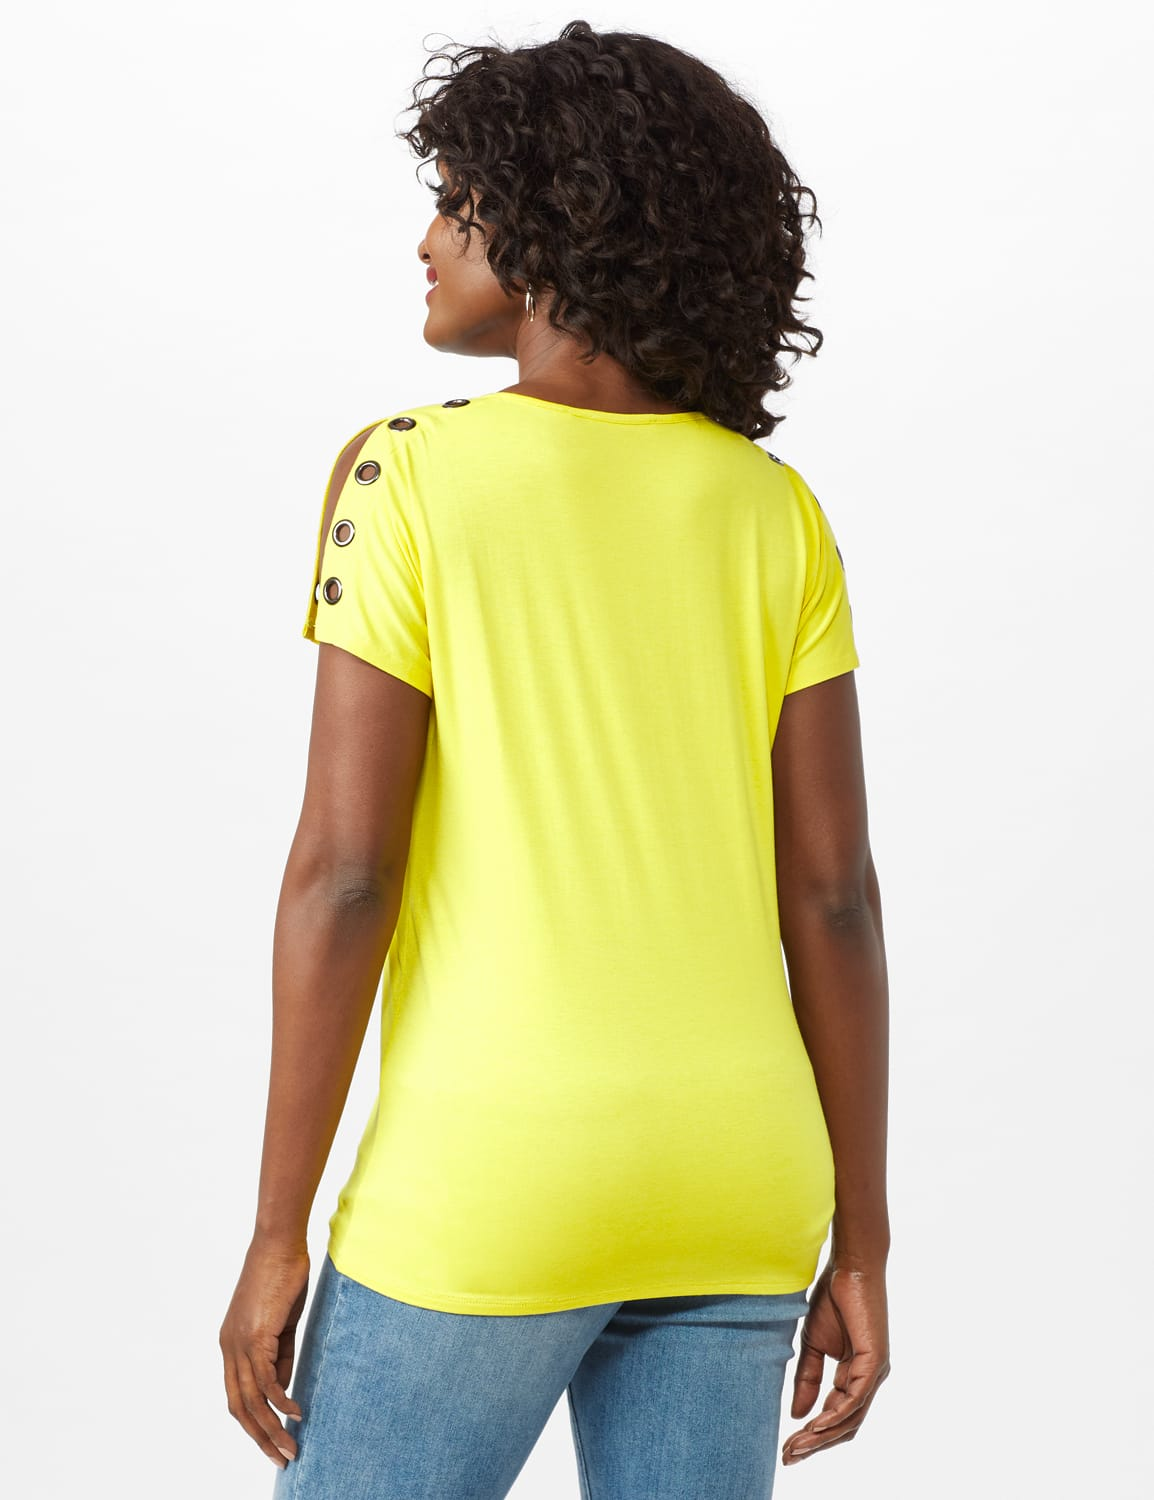 Grommet Trim Split Sleeve - Highlighter Yellow - Back